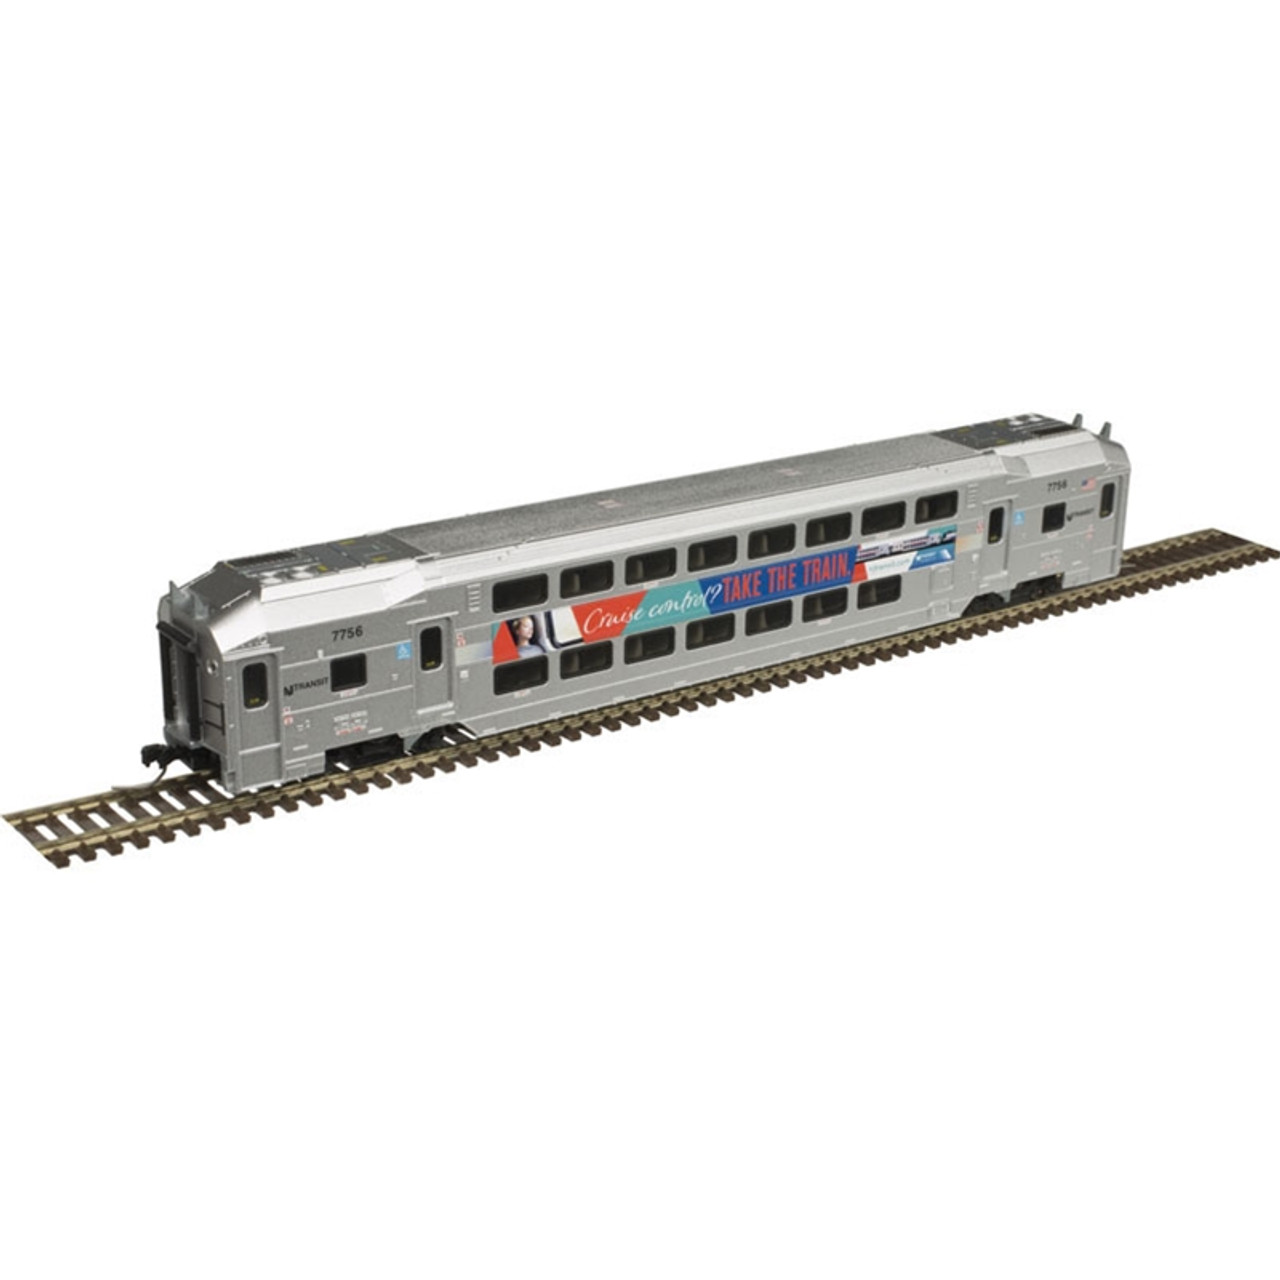 ATLAS 40004064 NJ Transit - Multi-Level Trailer with out Toilet - Cruise Control - #7756 (SCALE=N) Part # 150-40004064